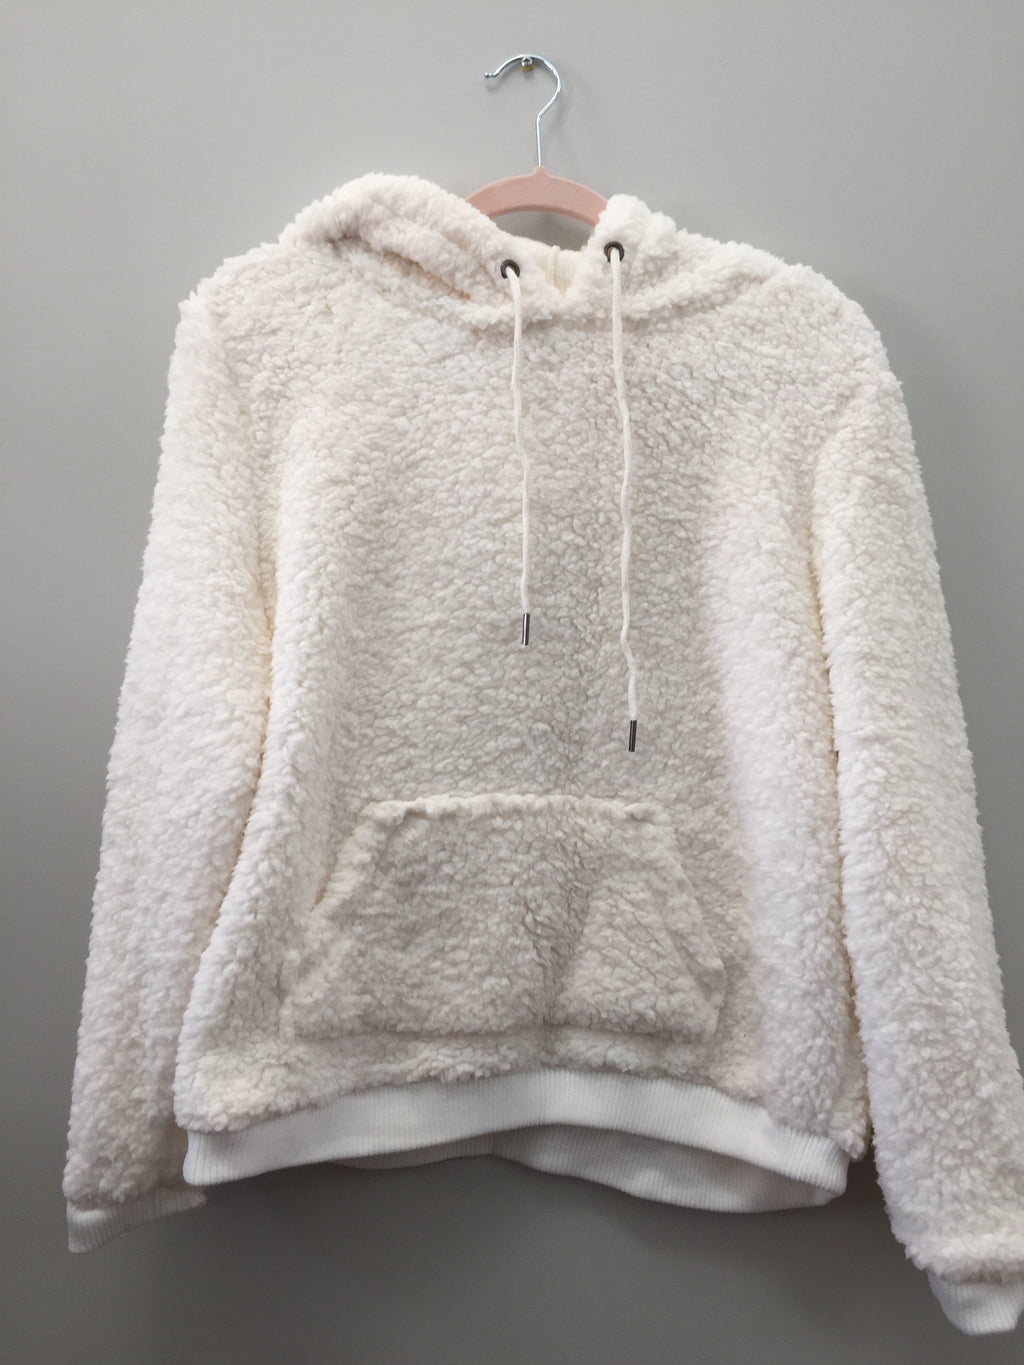 Devon Teddy Bear Hoodie- Ivory - Sweatshirt - The Valley Boutique - Canada Online Shopping